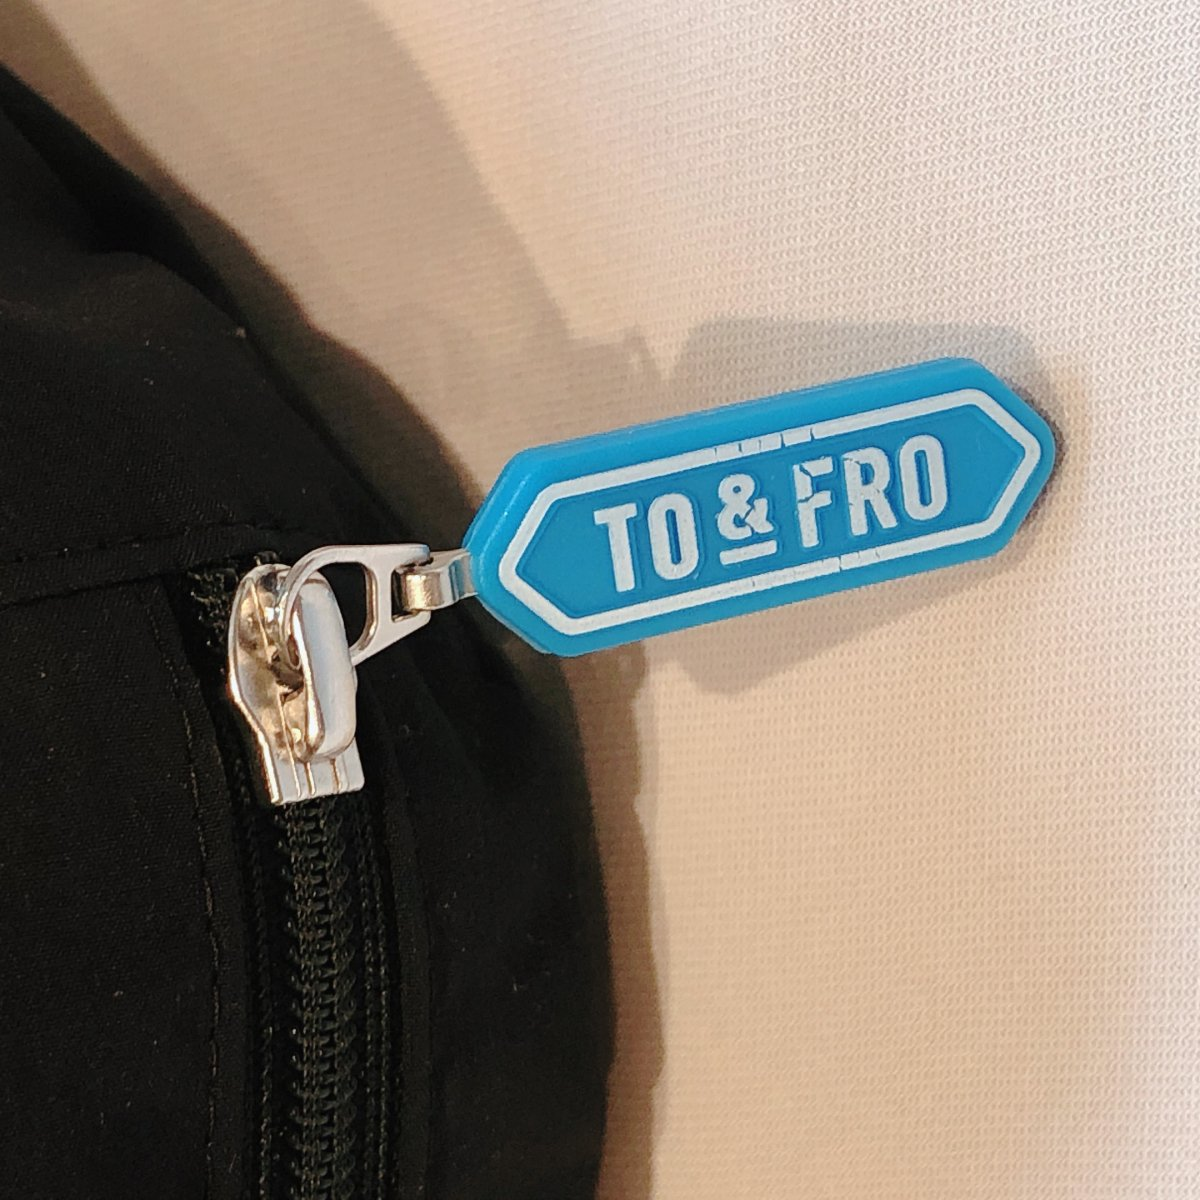 One mile POUCH(Et baas x TO&FRO) 詳細画像6